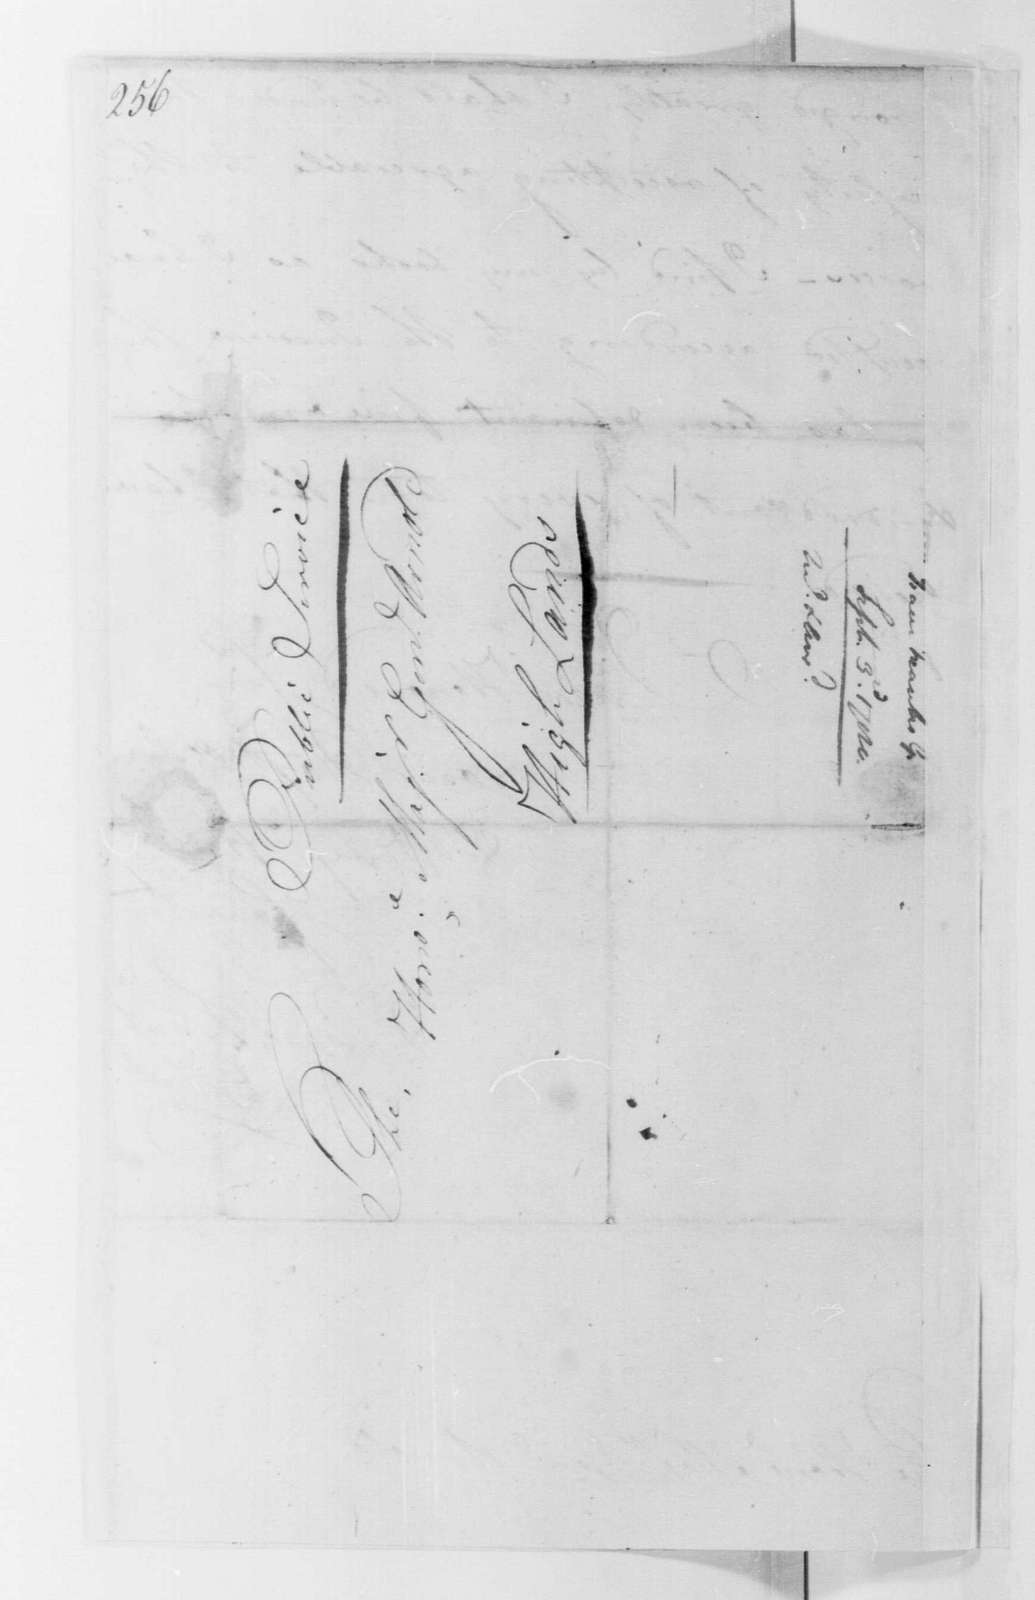 George Washington Papers, Series 4, General Correspondence: Isaac Franks to Benedict Arnold, September 3, 1780